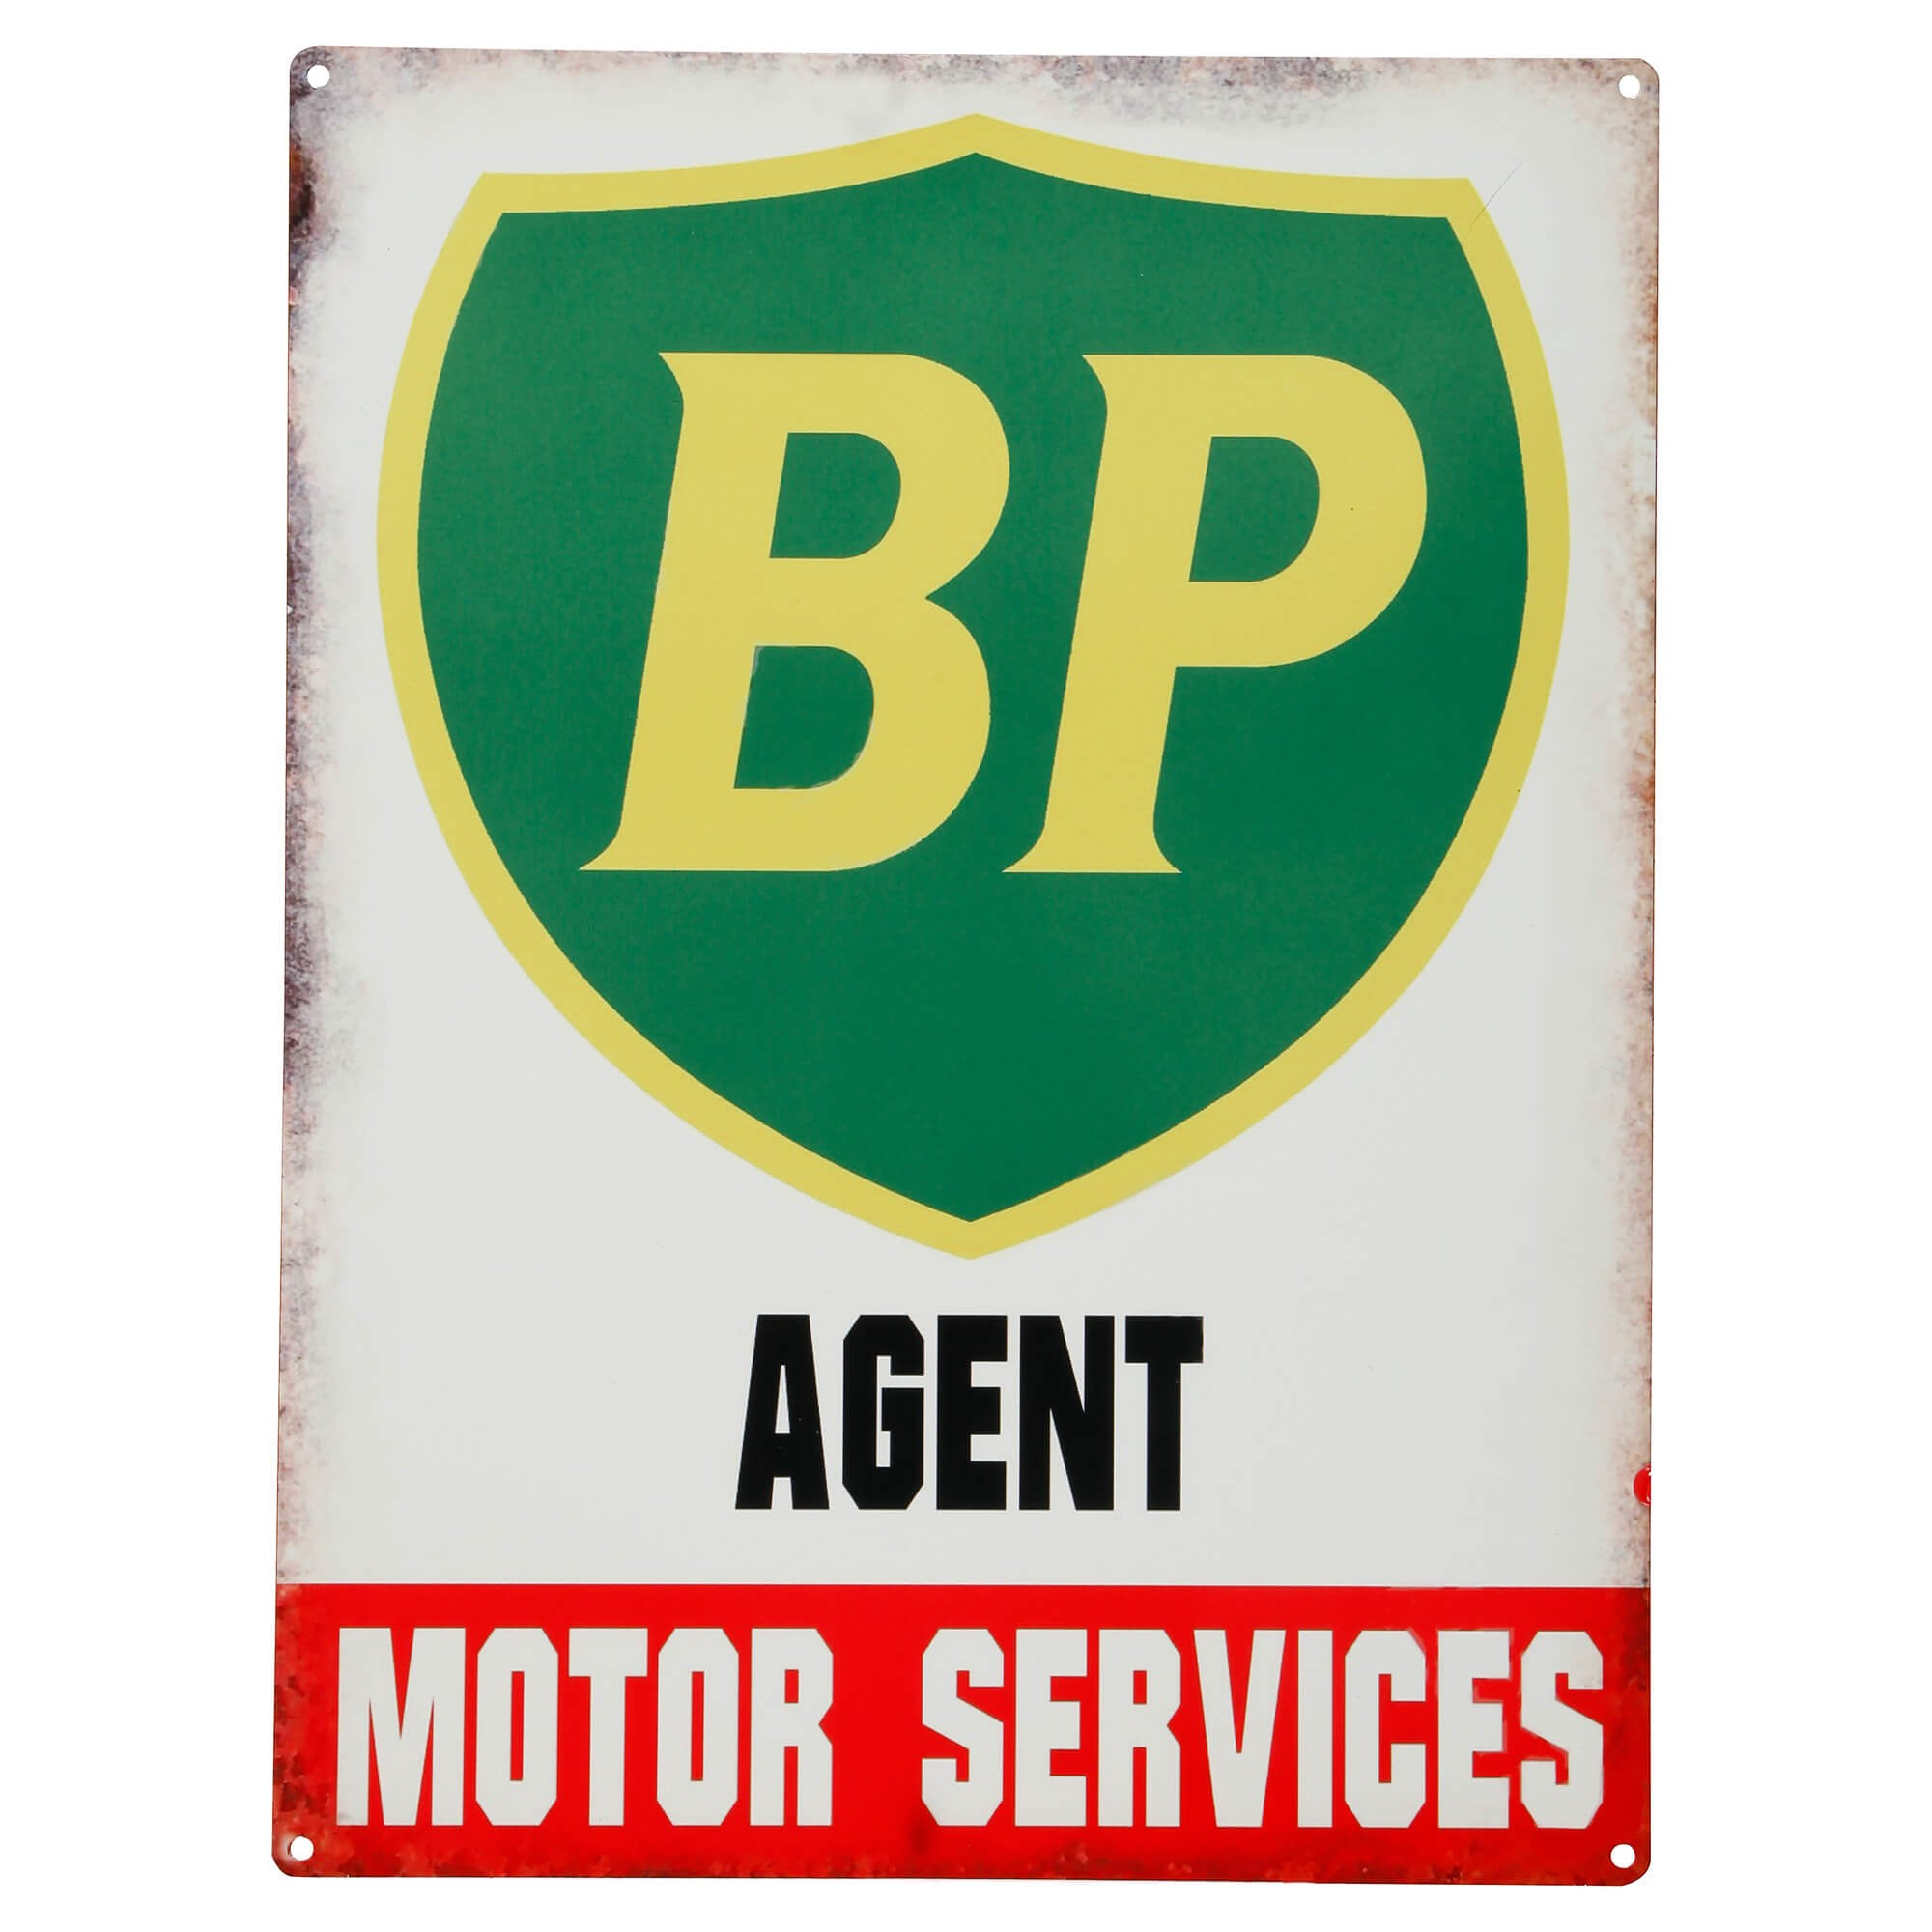 214561 British Petroleum Vintage Metal Sign  Moss Motors. Ideas Signs Of Stroke. Halloween Pennant Banners. Public Speaking Signs. Rajasthani Logo. Geriatric Depression Signs. Skyrim Logo. Bike Murals. Sea Animal Stickers